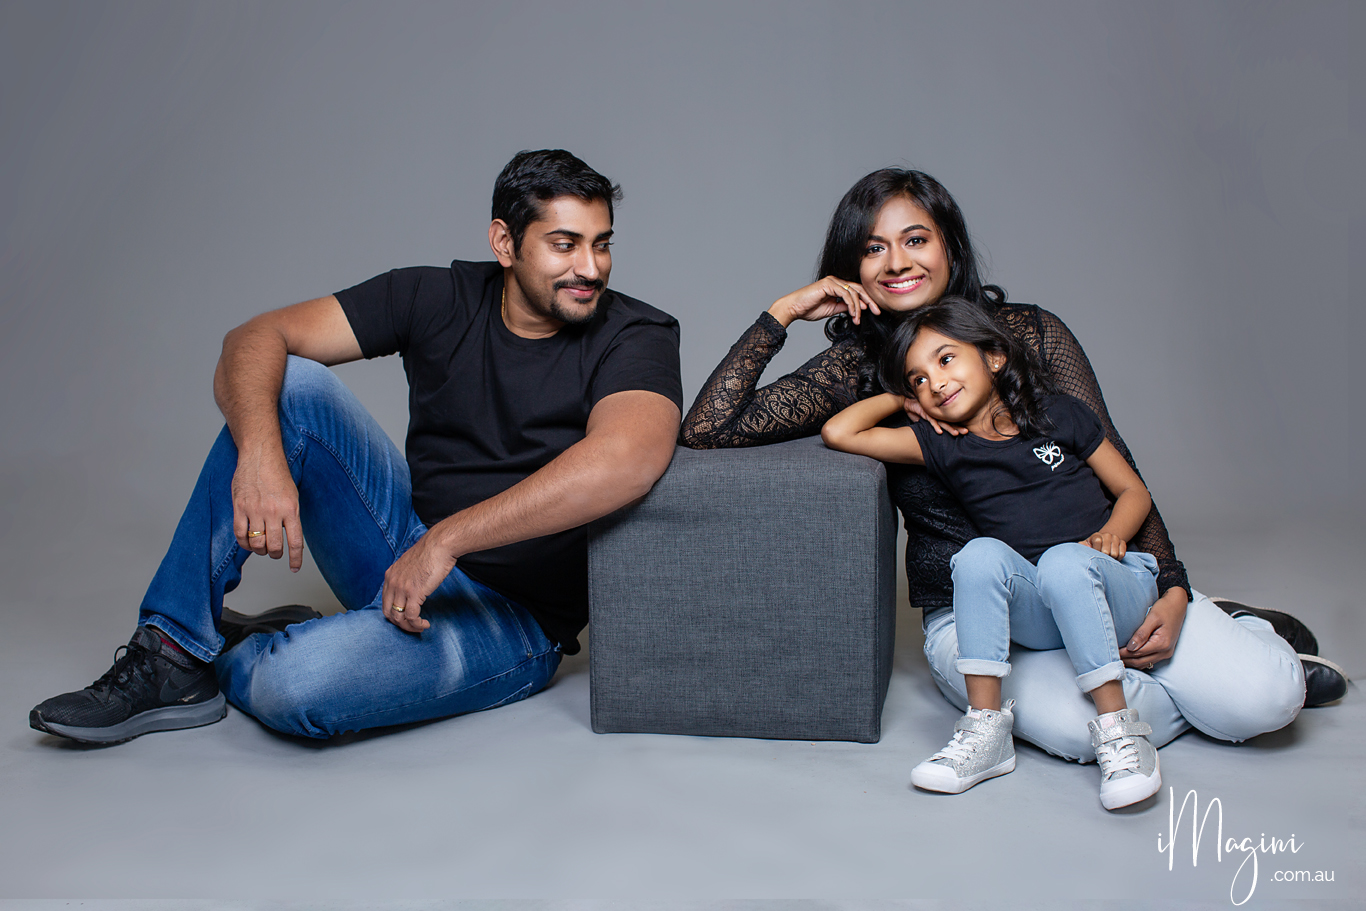 20190721_Neethu Family_018 copy